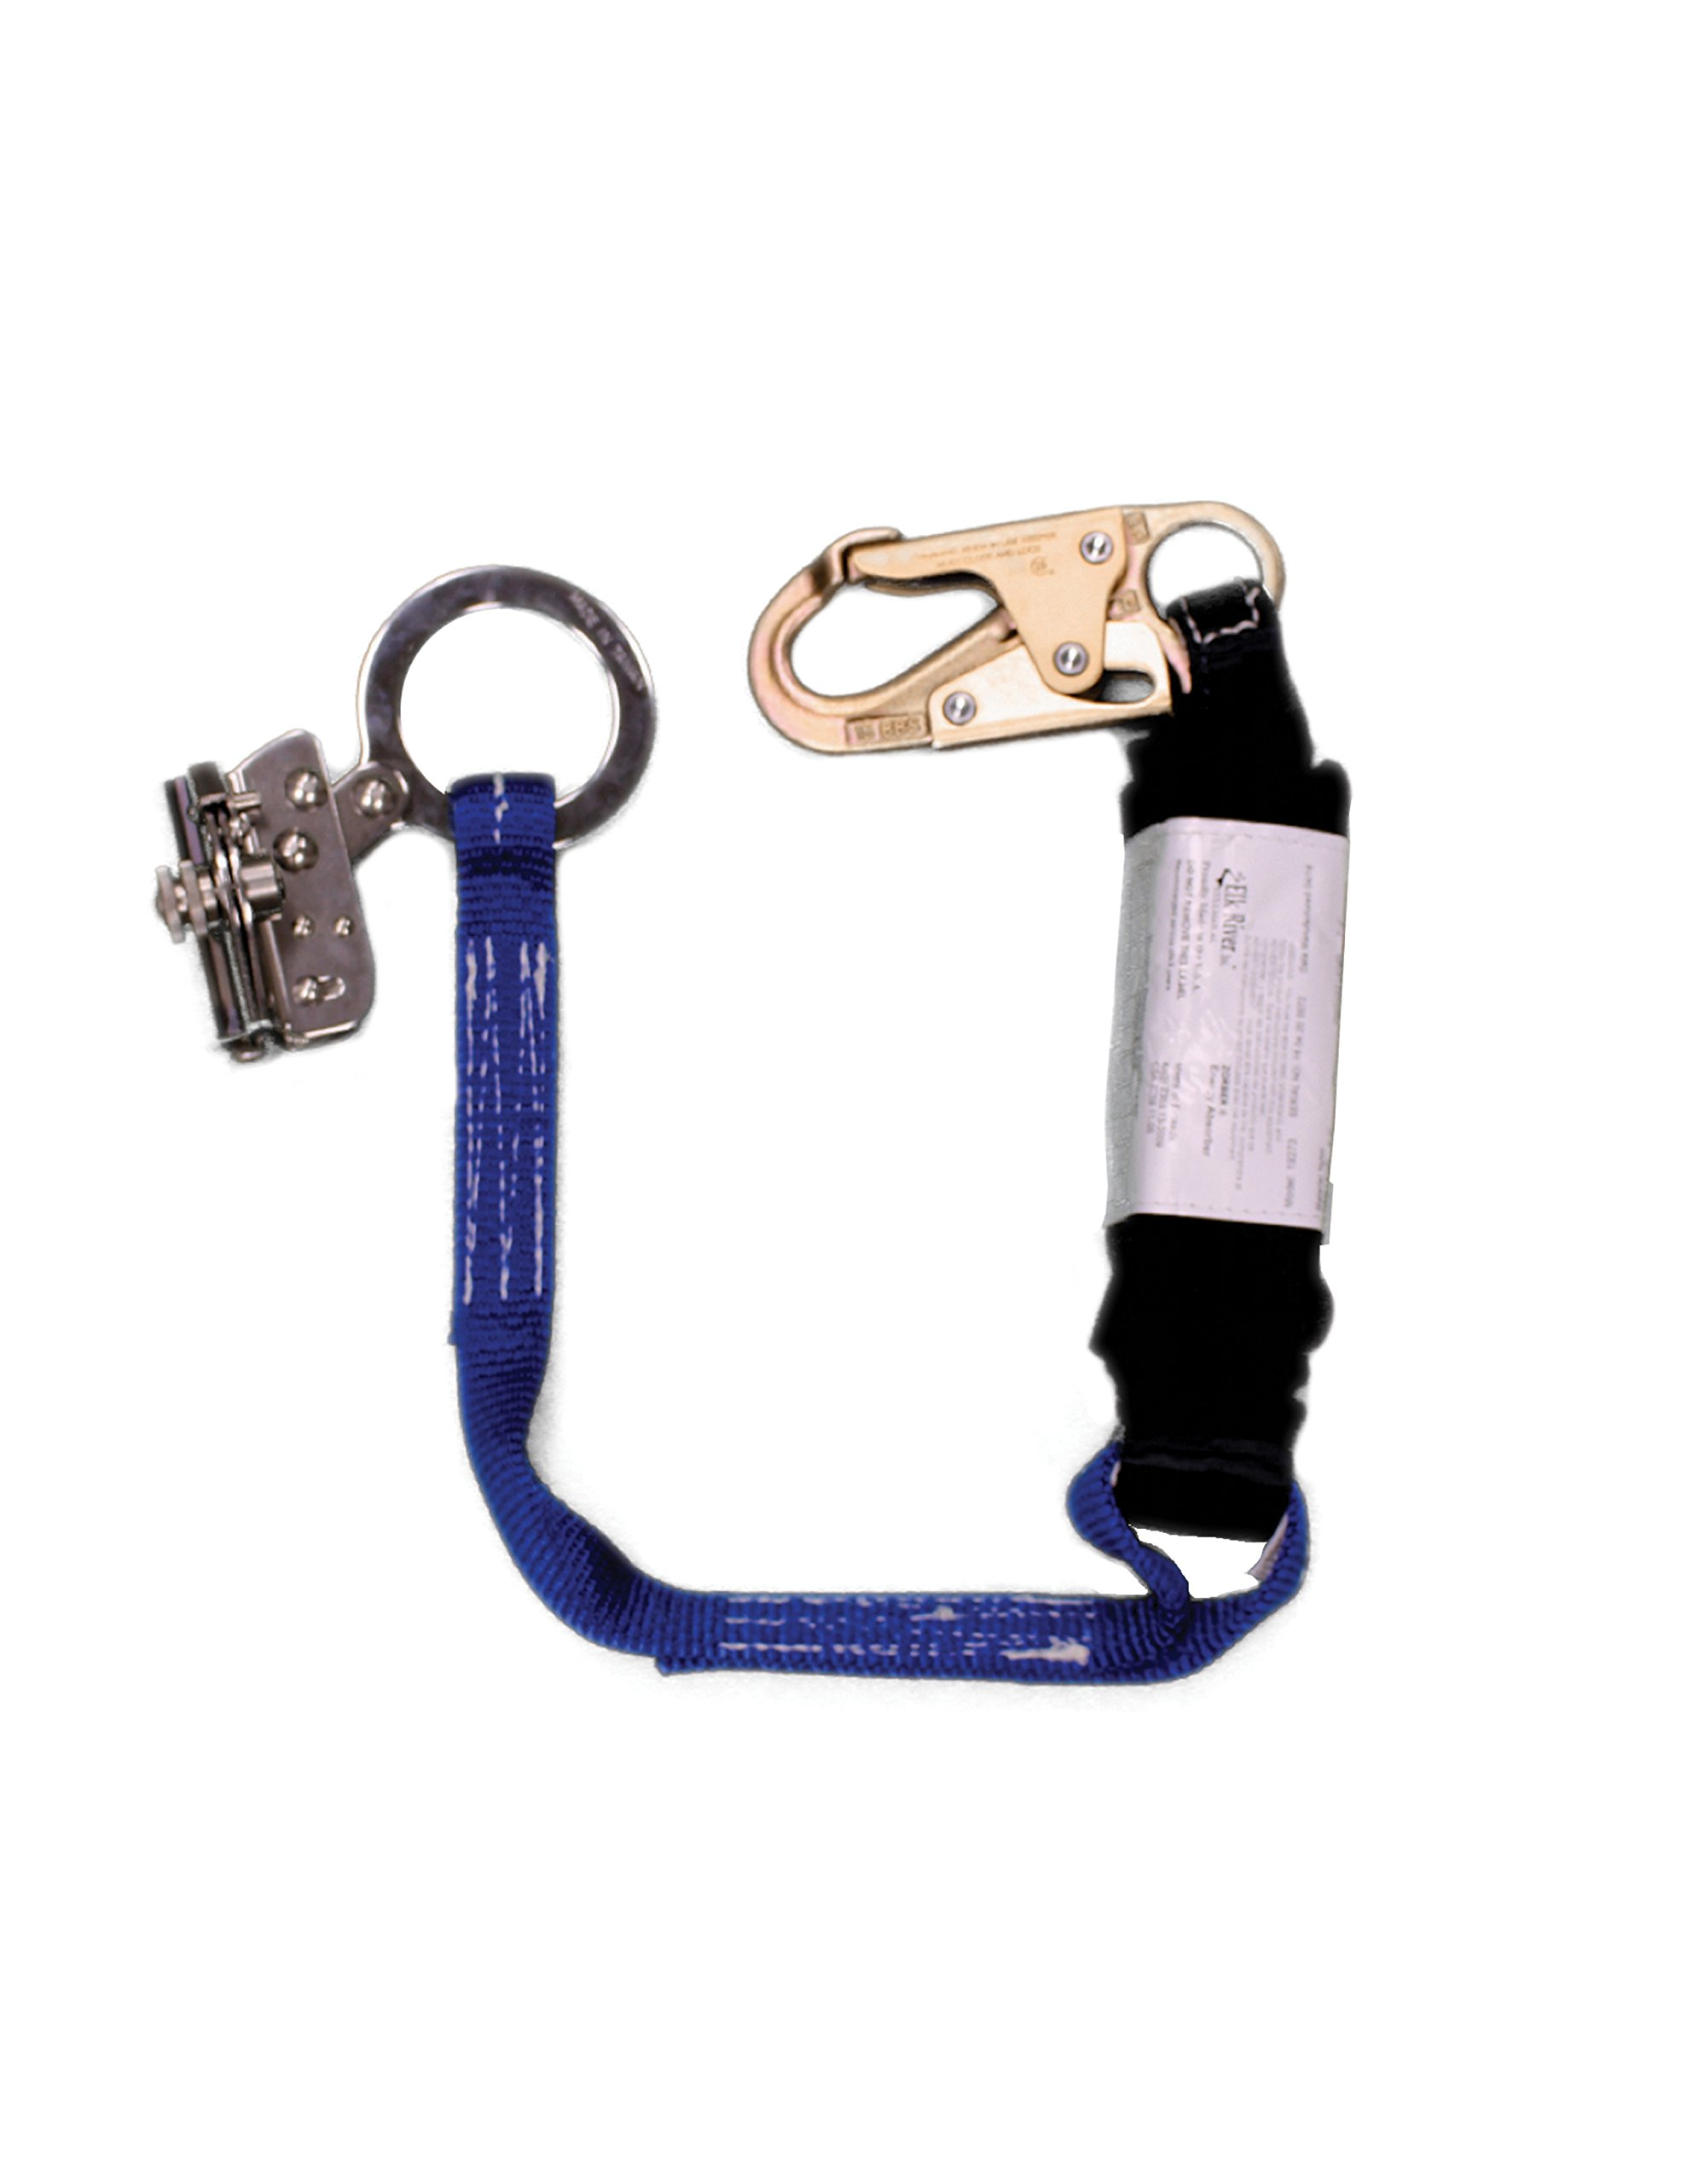 Elk River 19273 Rope Grab with Attached Web 1'' x 3' Zorber Lanyard and CenturionZ Snaphook, 3600 lbs Gate, 5/8'' Size